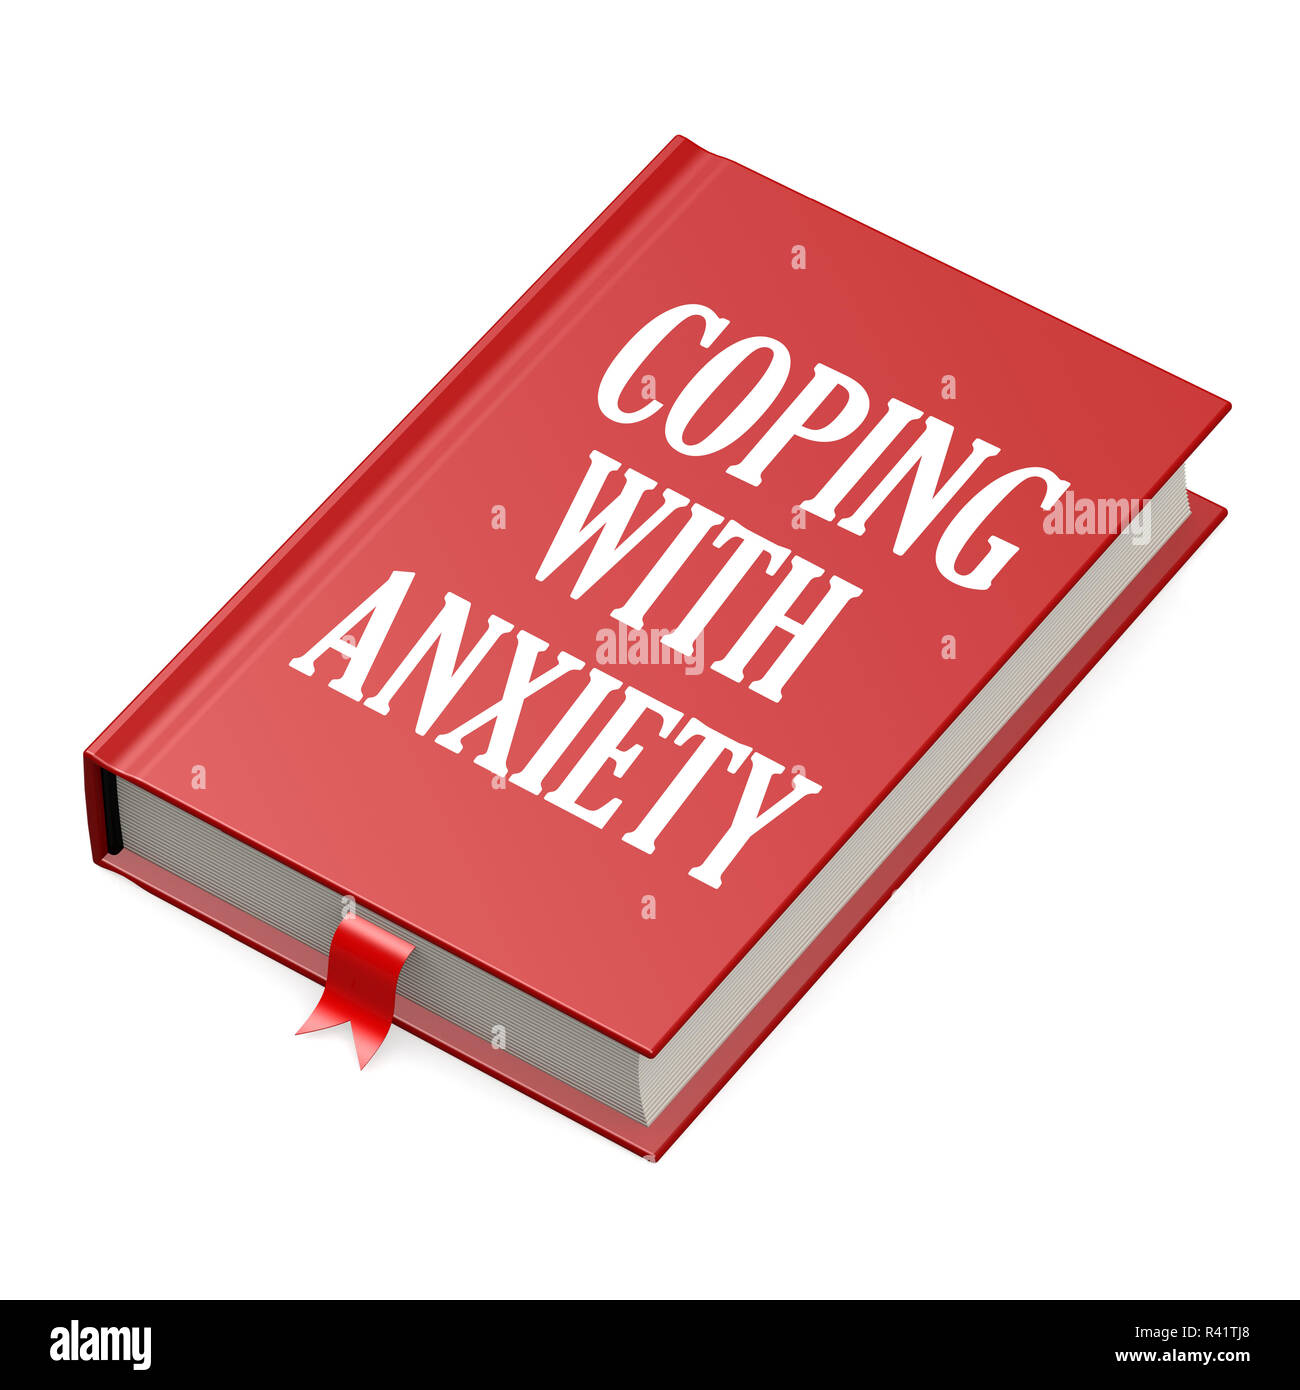 Book with an anxiety concept title - Stock Image